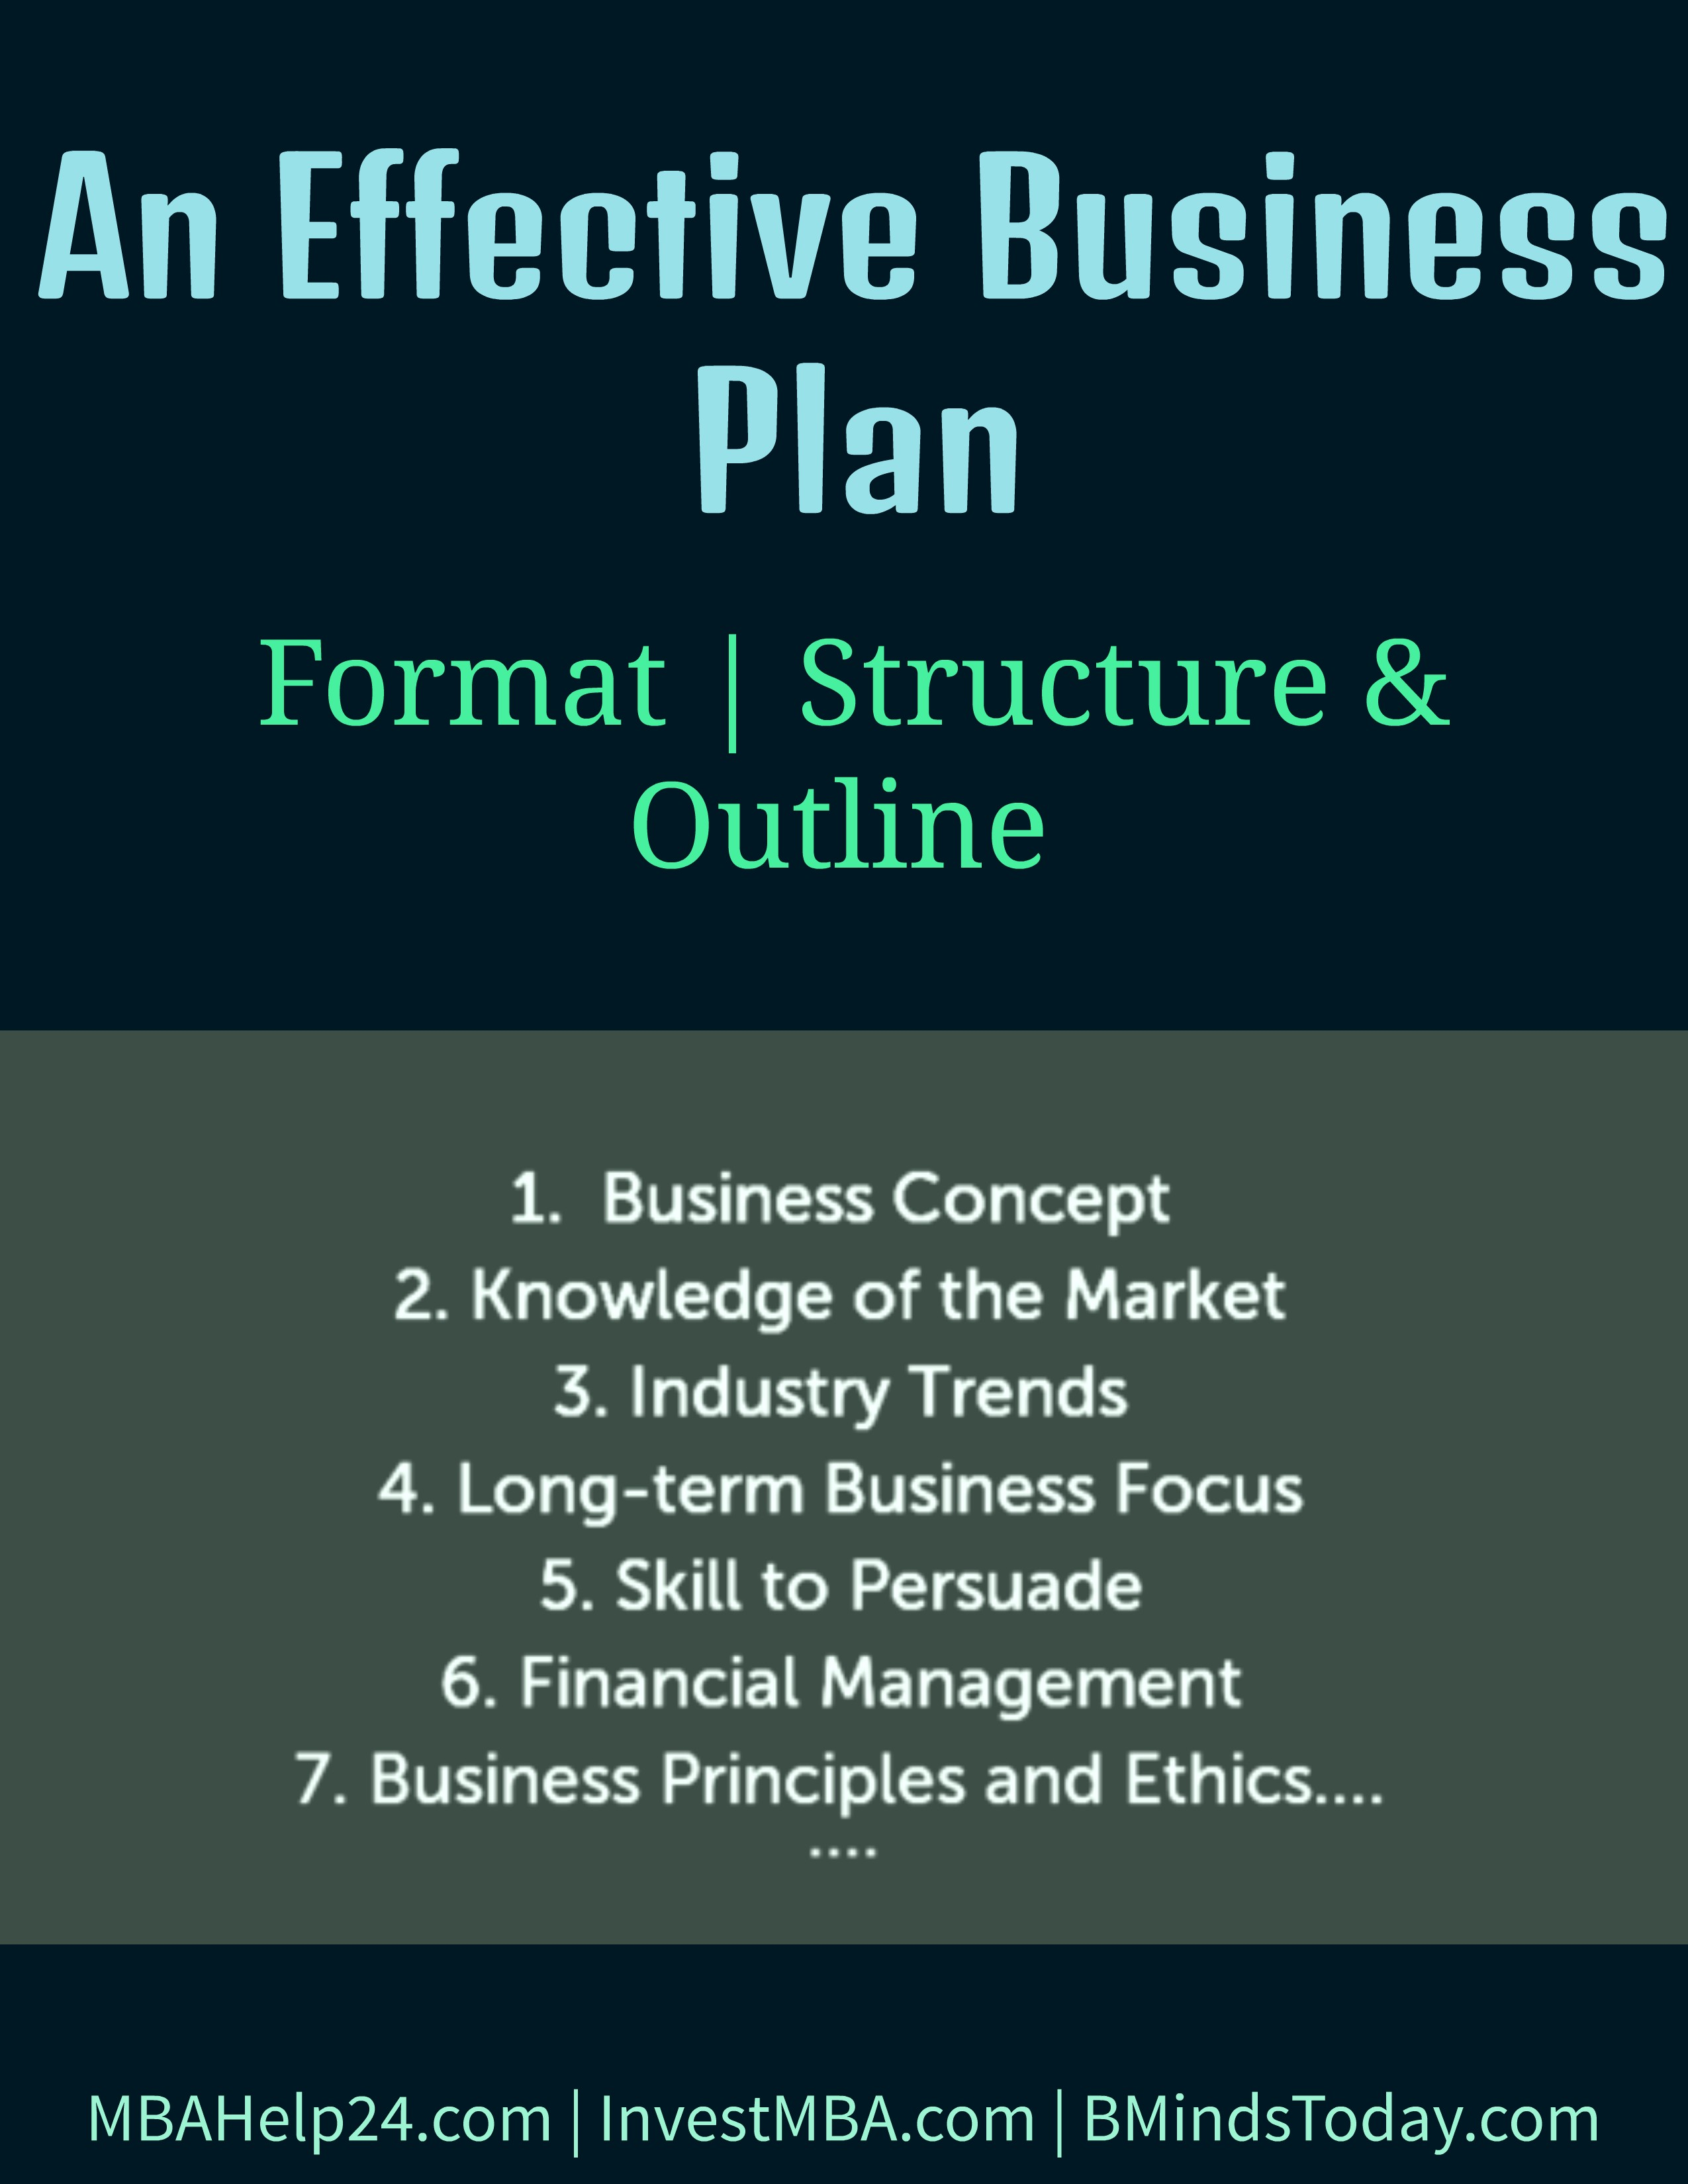 An Effective Business Plan | Format | Structure | Outline business plan An Effective Business Plan: Format, Structure & Outline an effective business plan Structure and Outline